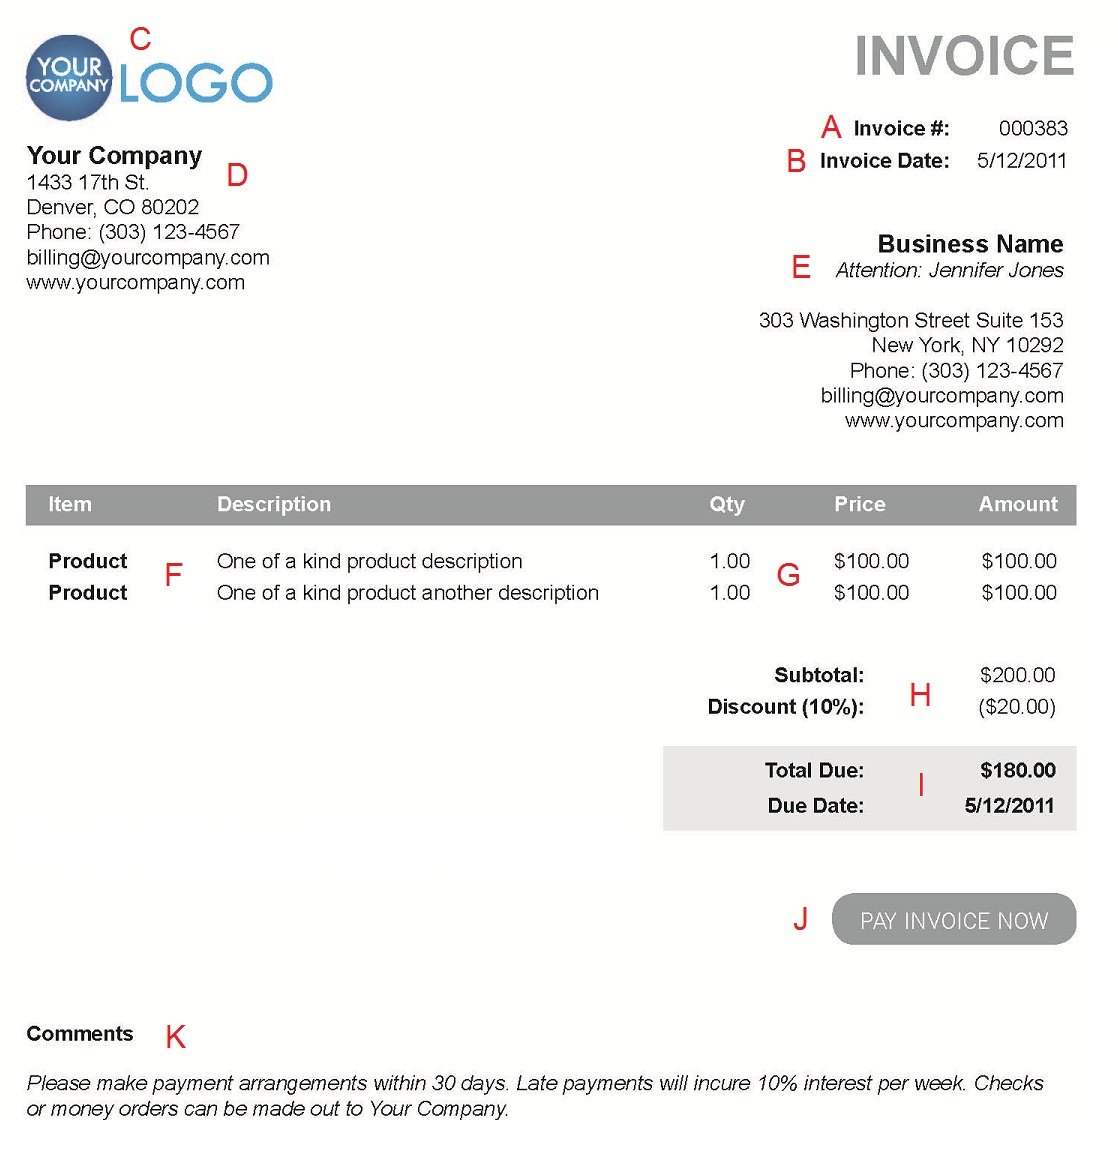 Offtheshelfus  Unusual The  Different Sections Of An Electronic Payment Invoice With Lovely A  With Delightful Free Invoicing Software Reviews Also How To Do Invoicing In Addition Invoice Format For Services And Commercial Invoices For Customs As Well As Multiple Invoices Additionally Invoice Statement Example From Paysimplecom With Offtheshelfus  Lovely The  Different Sections Of An Electronic Payment Invoice With Delightful A  And Unusual Free Invoicing Software Reviews Also How To Do Invoicing In Addition Invoice Format For Services From Paysimplecom